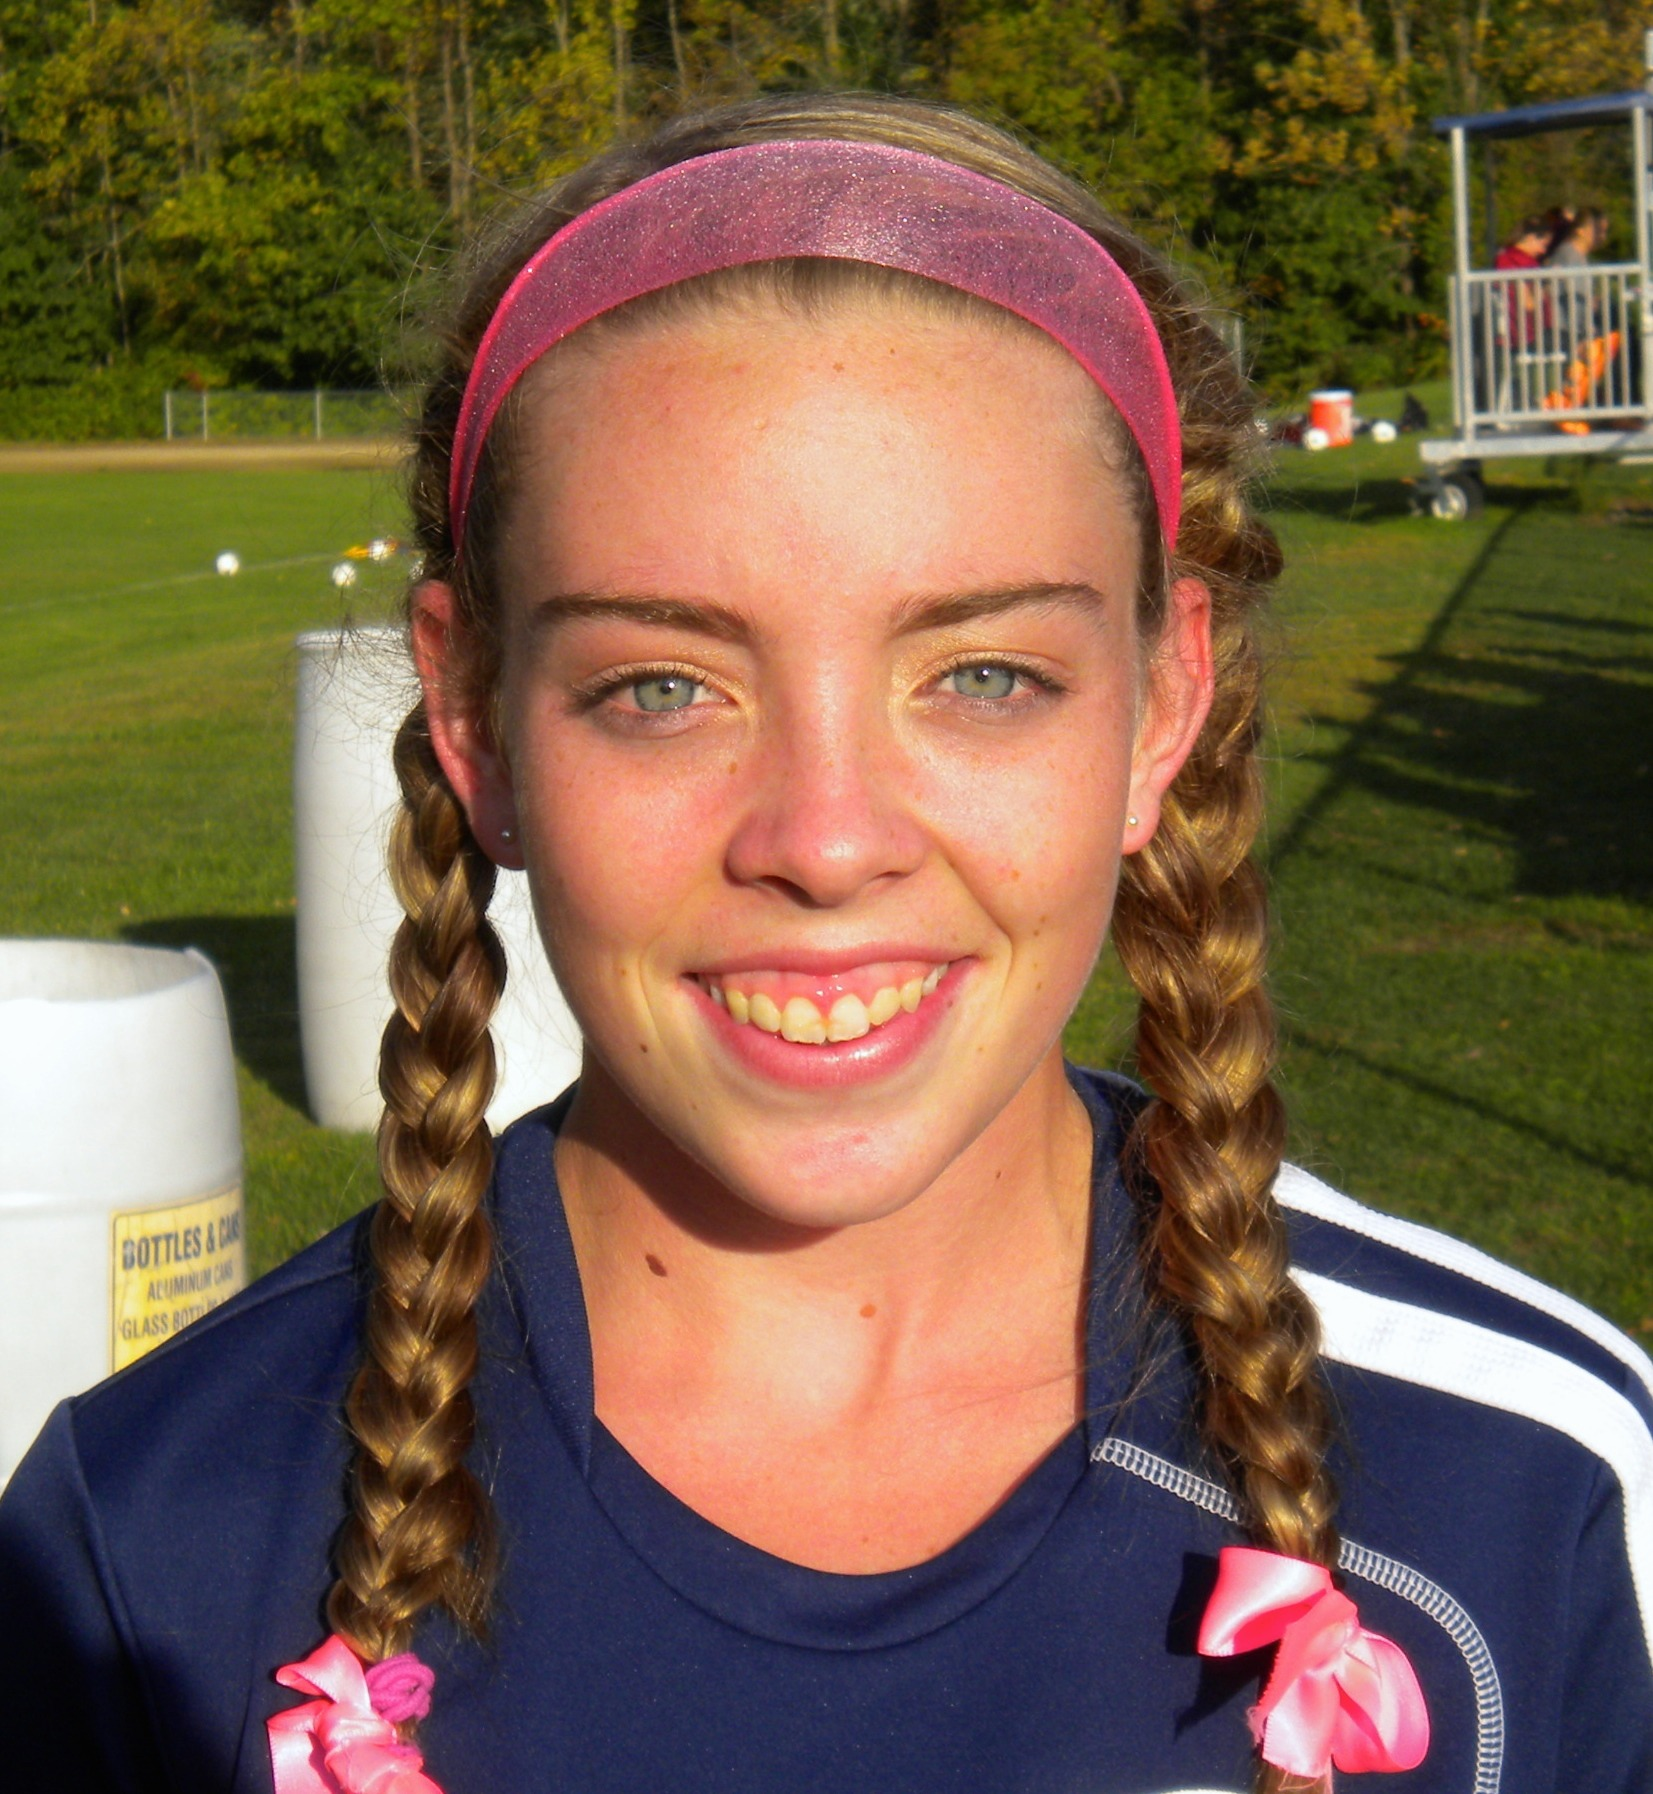 New Providence Edges Chatham 1 0 In Girls Soccer Chatham Nj News Tapinto